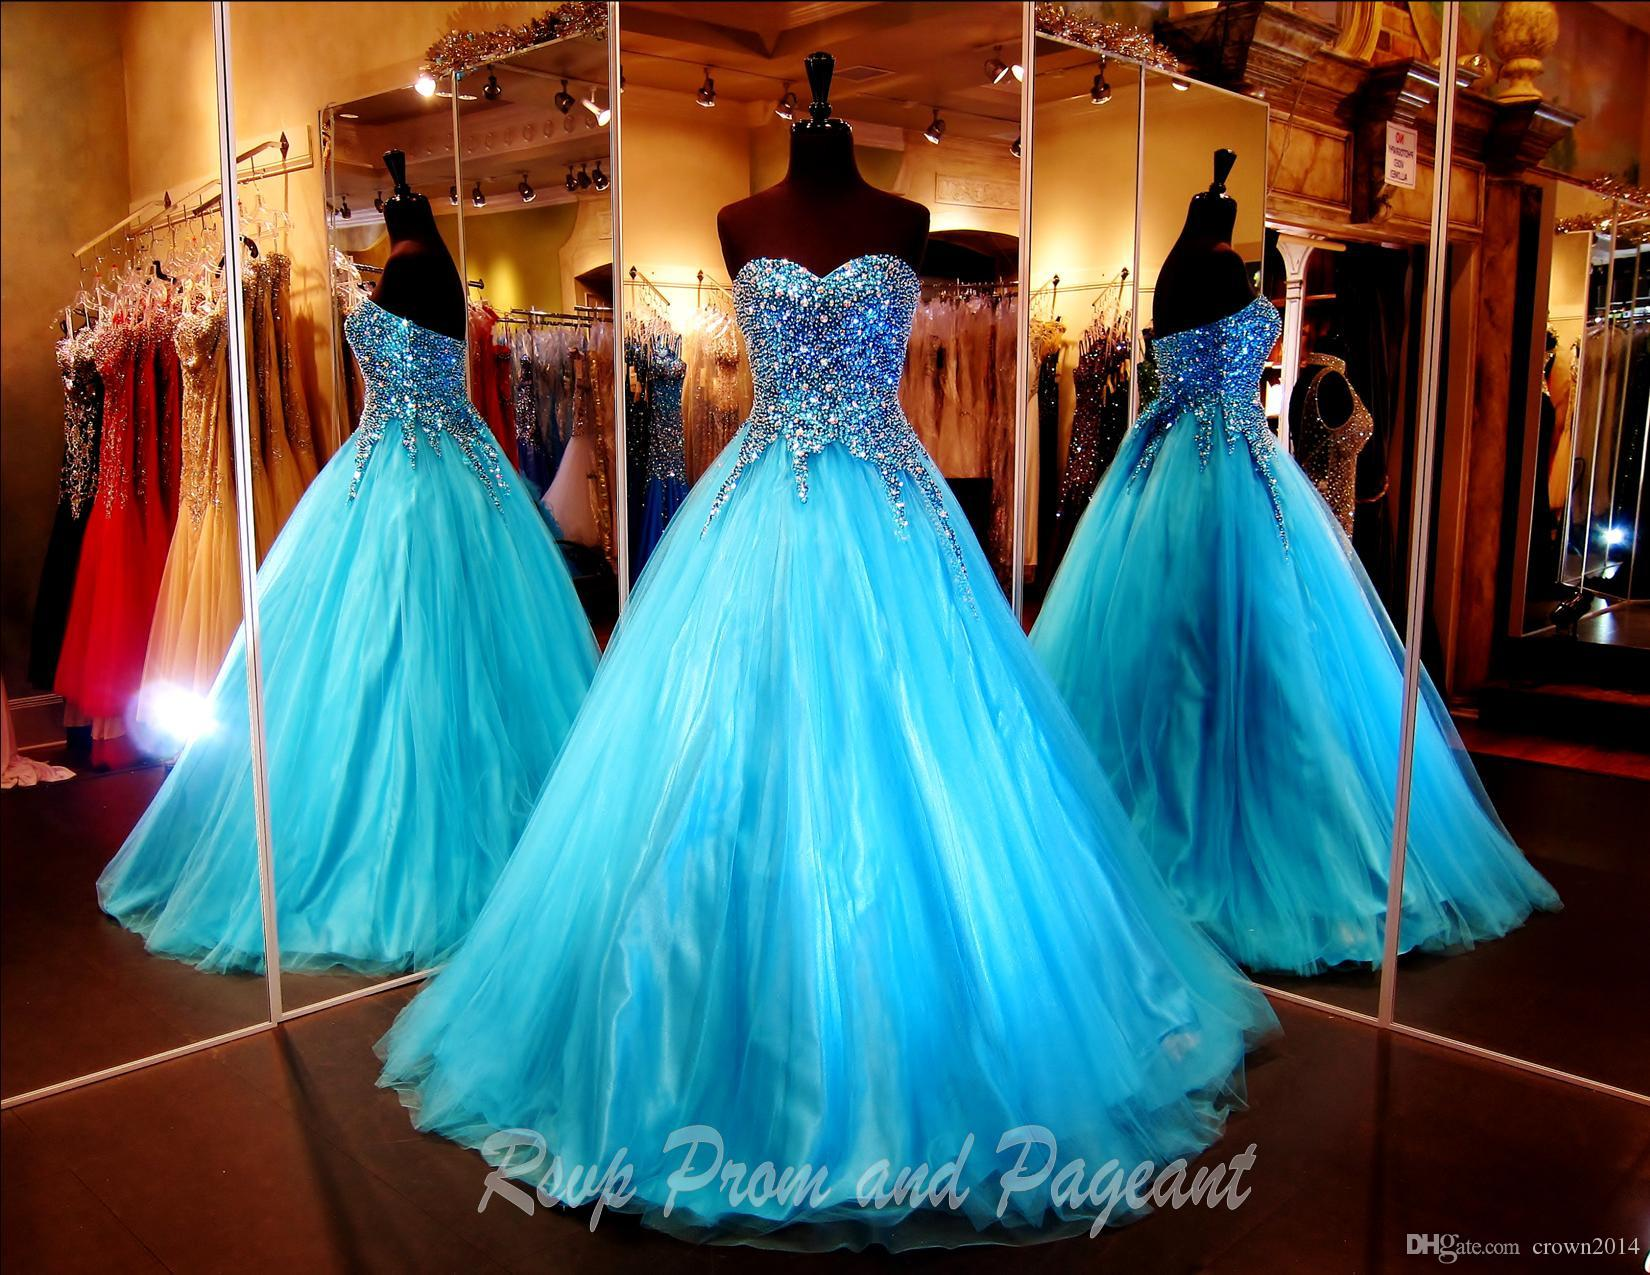 Turquoise Ball Gown Prom Dresses 2019 Sweetheart Strapless Multi Colored Stones Beaded Tulle Quinceanera Dresses Formal Masquerade Gowns